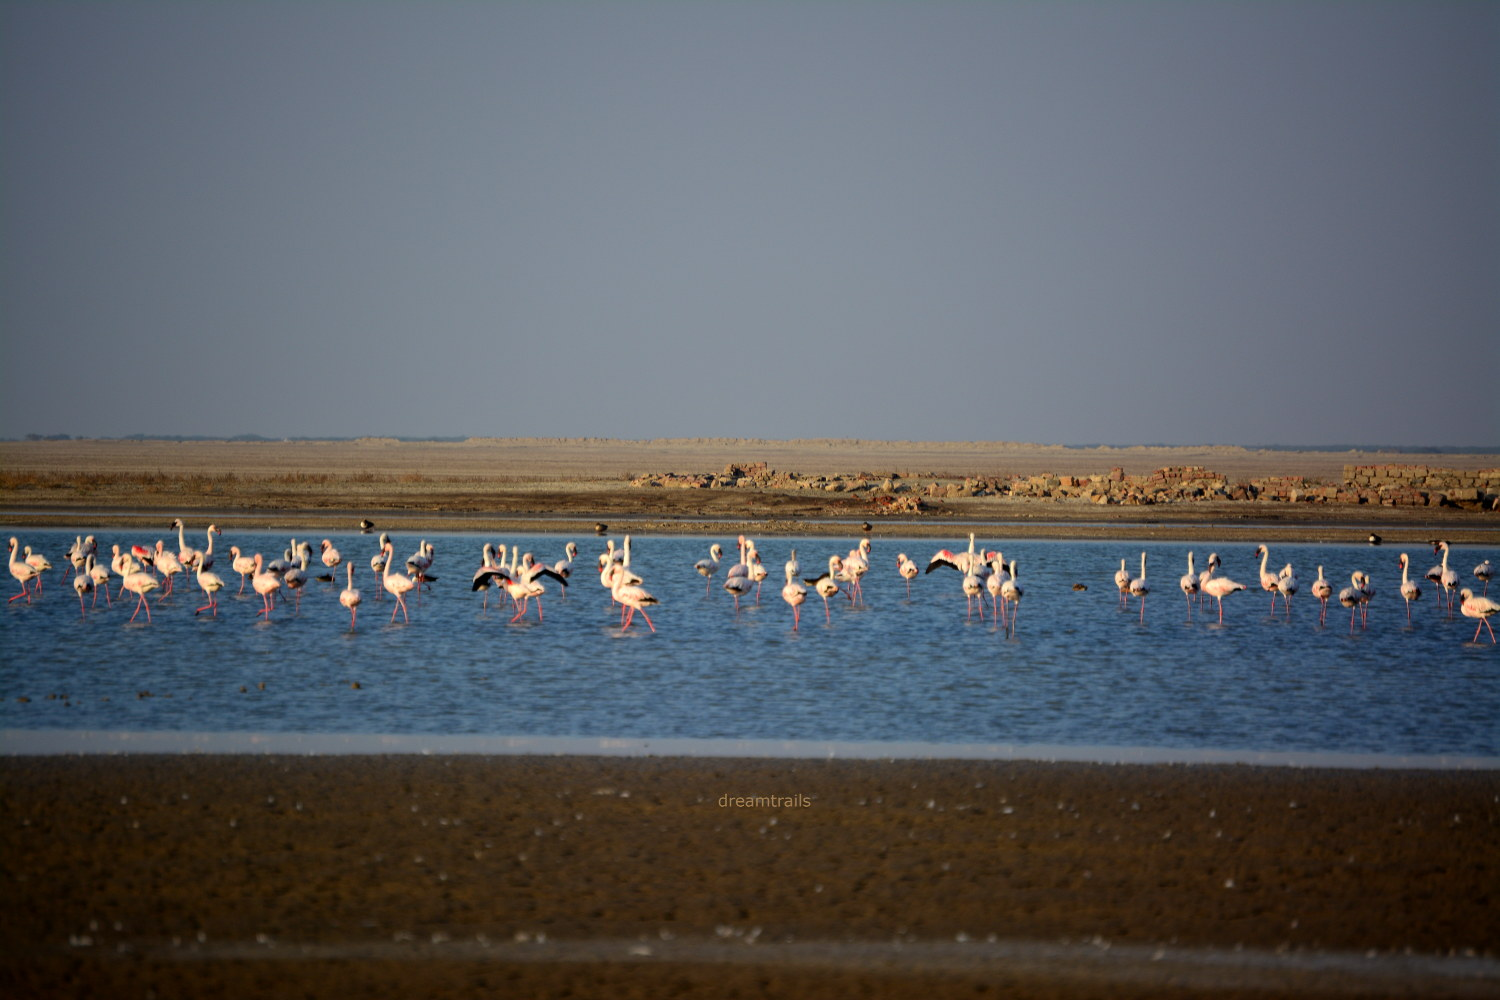 Flamingos at Little Rann of Kutch